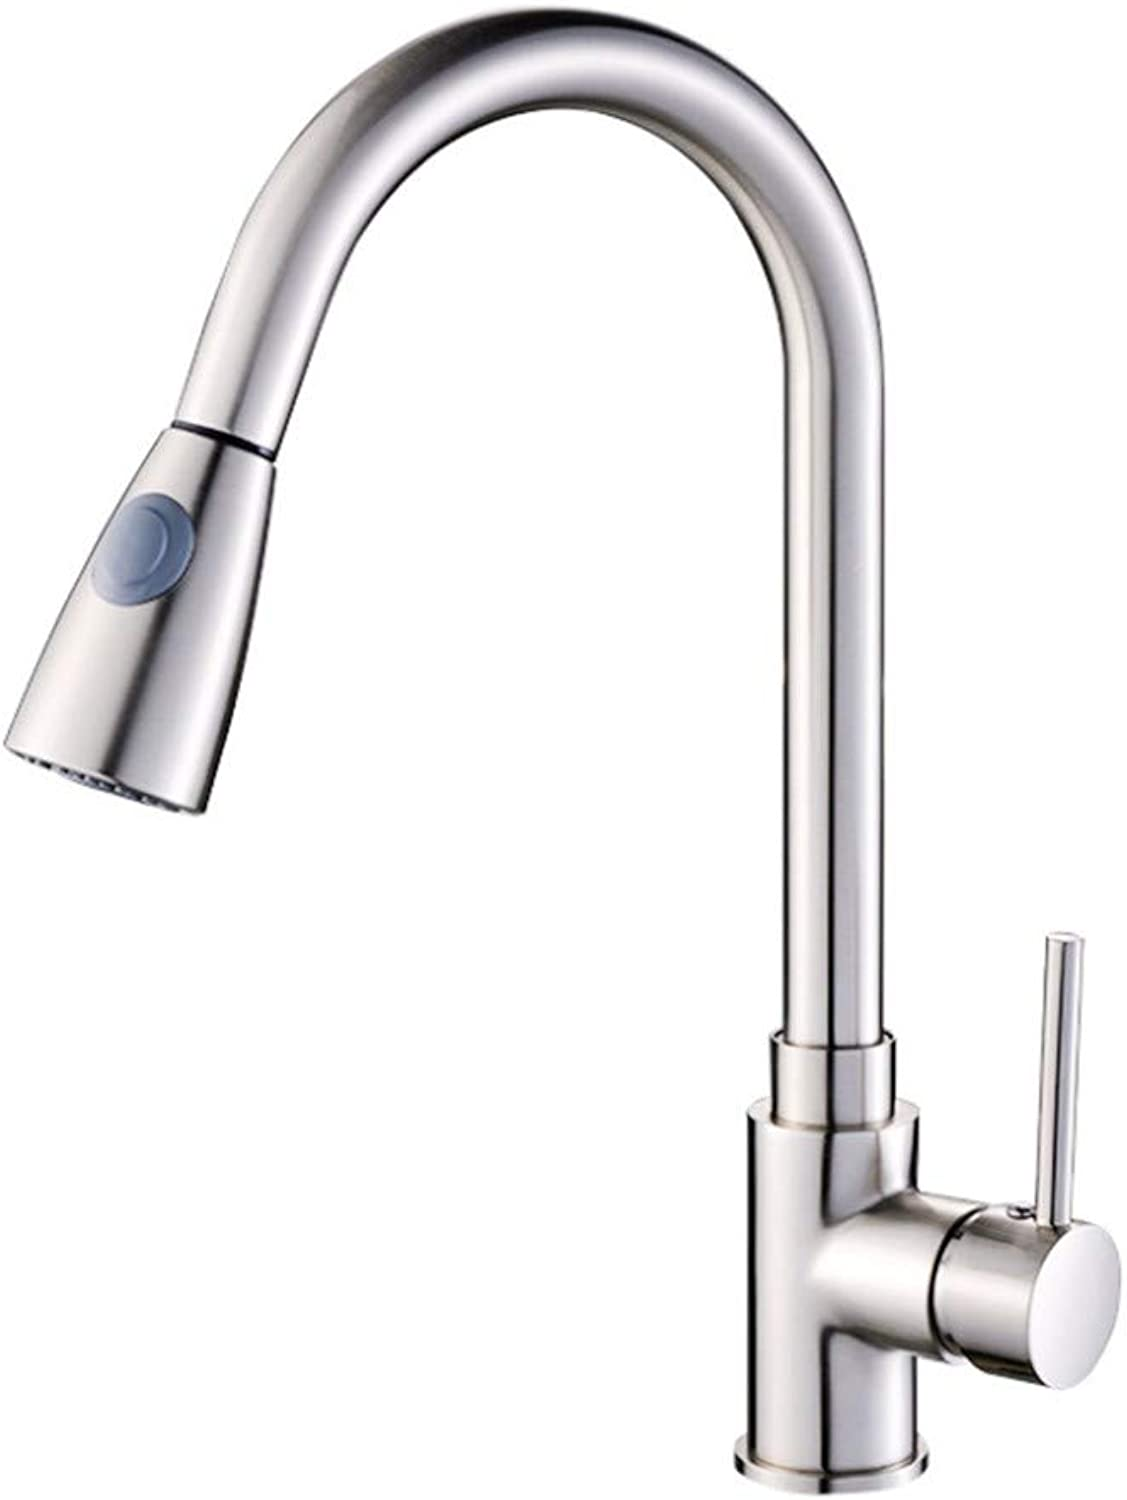 Kitchen Sink Taps Bathroom Taps Kitchen Faucet Wire Drawing Faucet Hot and Cold Faucet Sink Draw Tap.